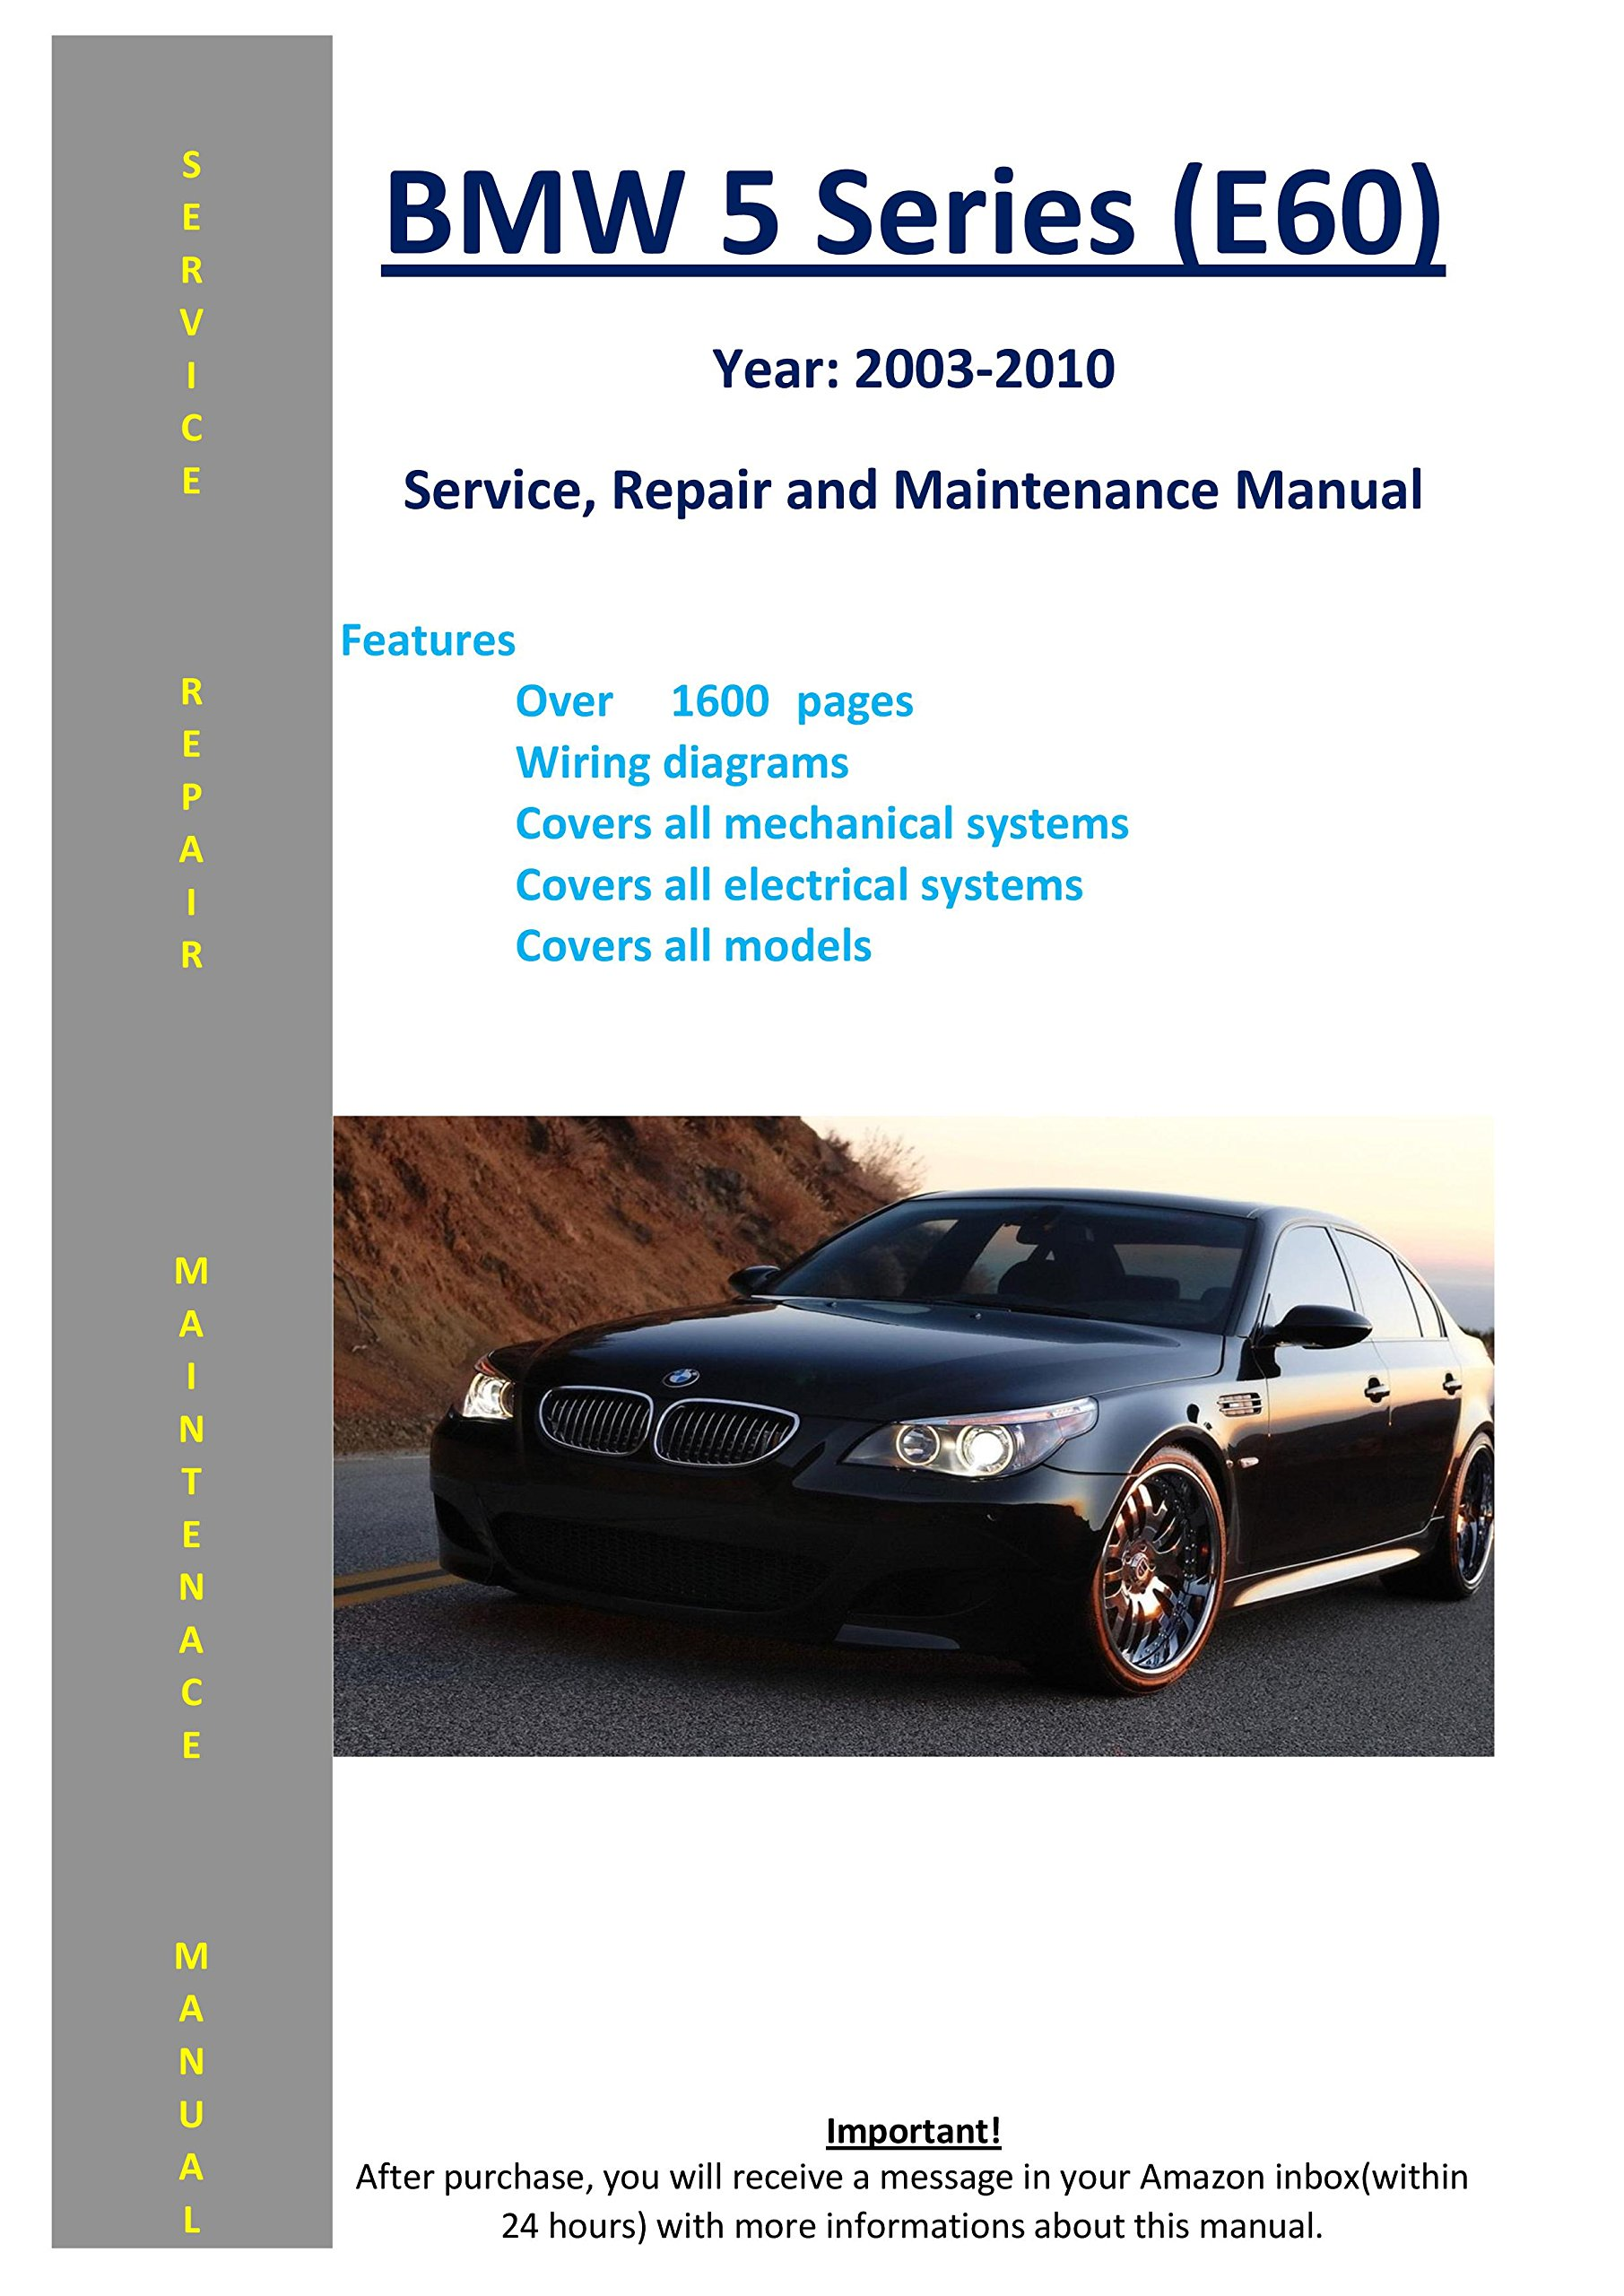 BMW 5 Series - E60 - From 2003 - 2010 Service Repair Maintenance Manual:  SoftAuto Manuals: 5121336323009: Amazon.com: Books